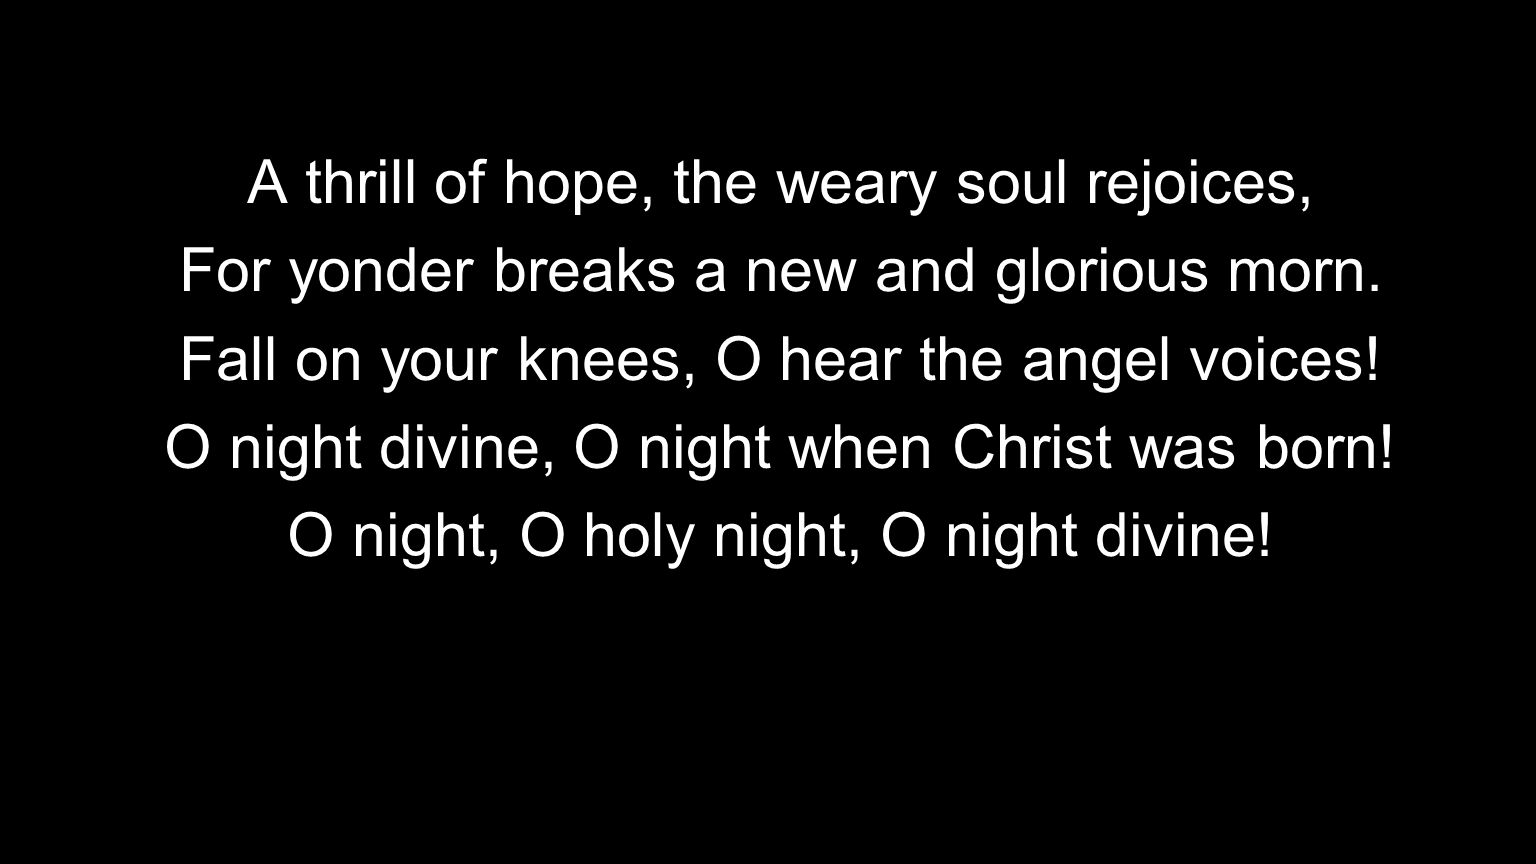 A thrill of hope, the weary soul rejoices,